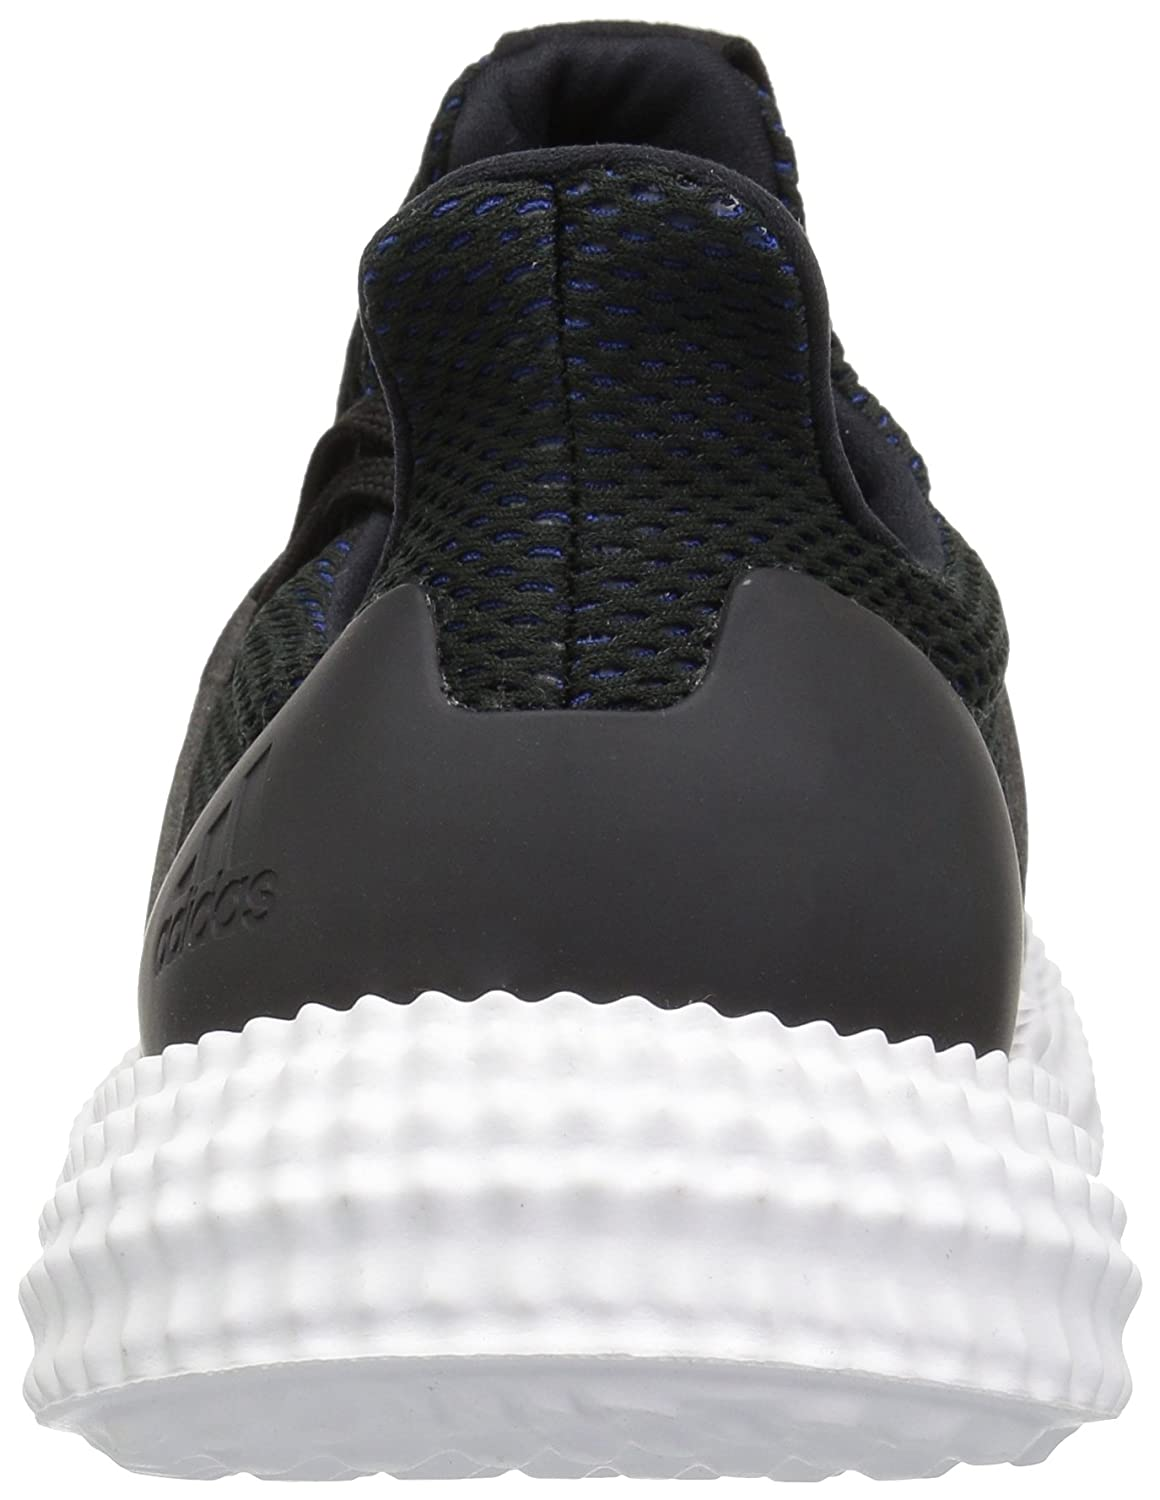 adidas athletics 24 7 tr m